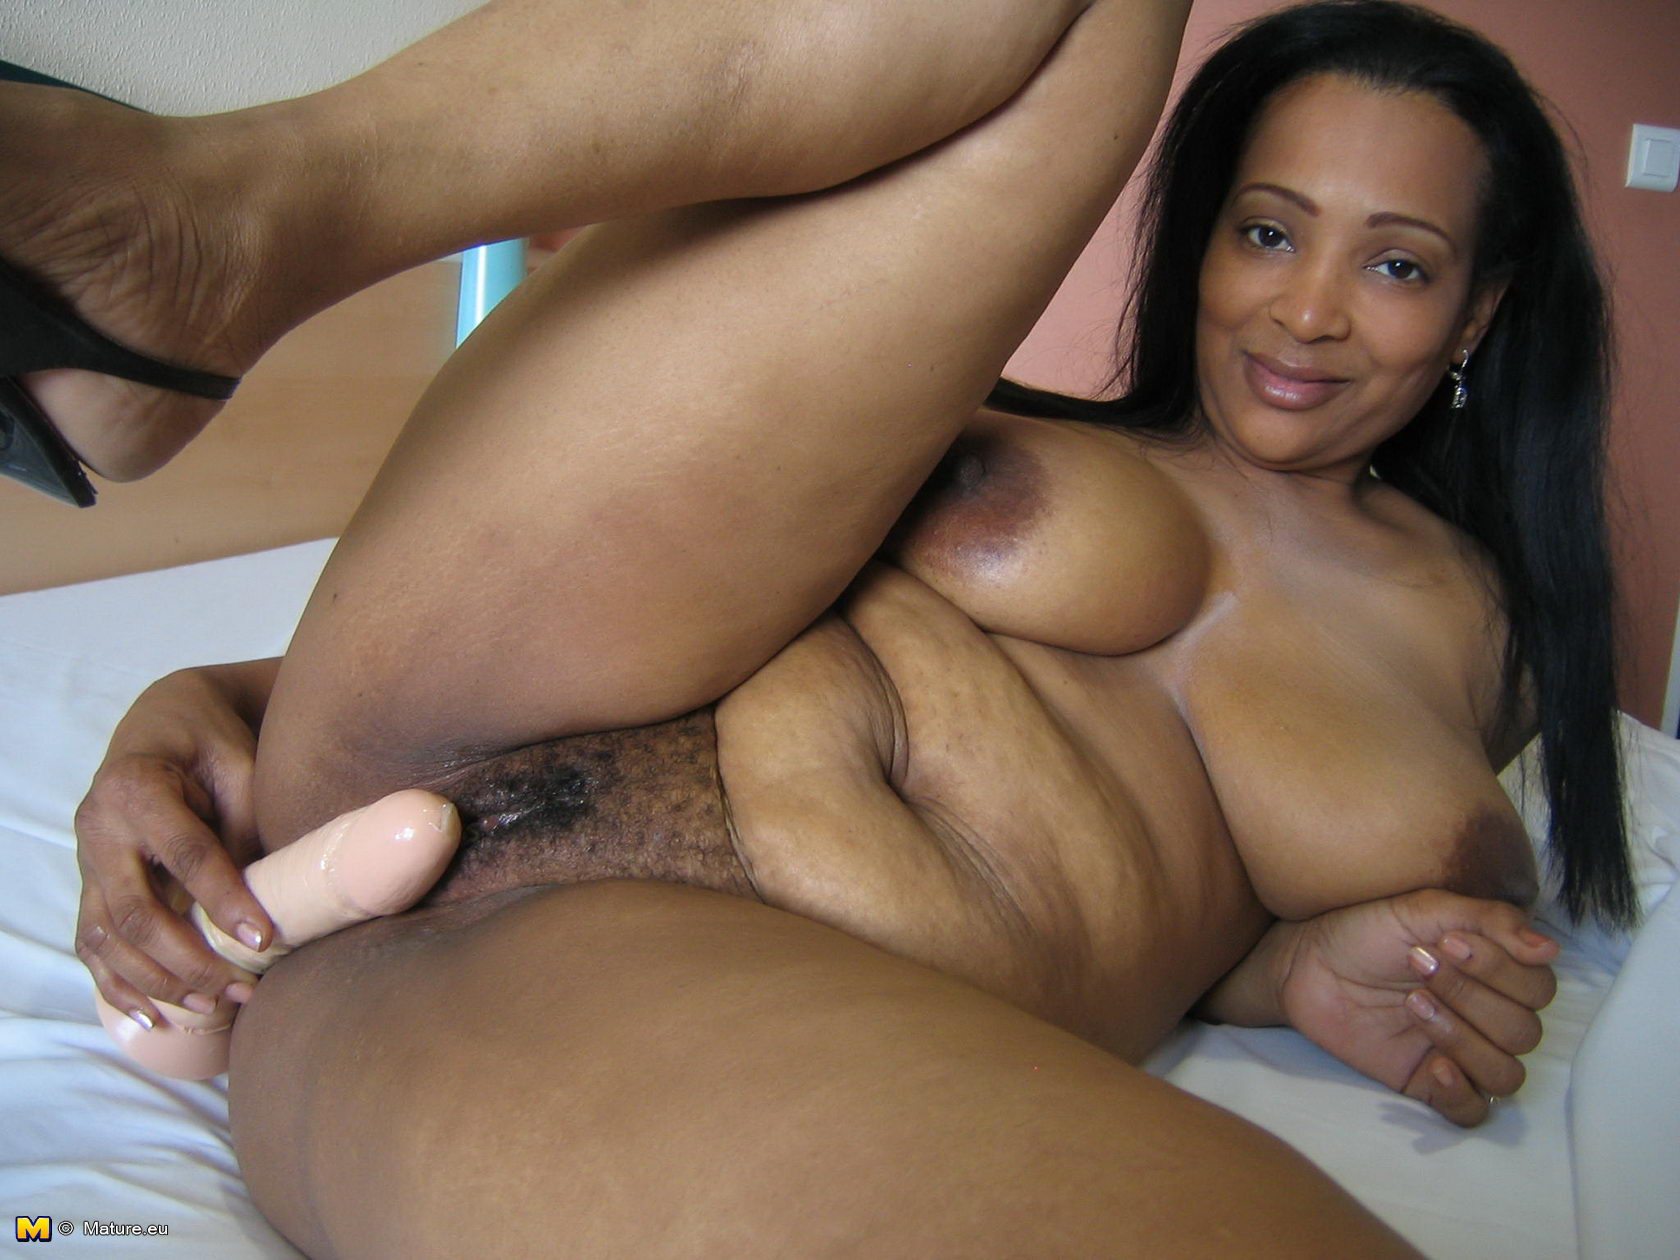 mature ebony porn sites naked gallery - metaingles